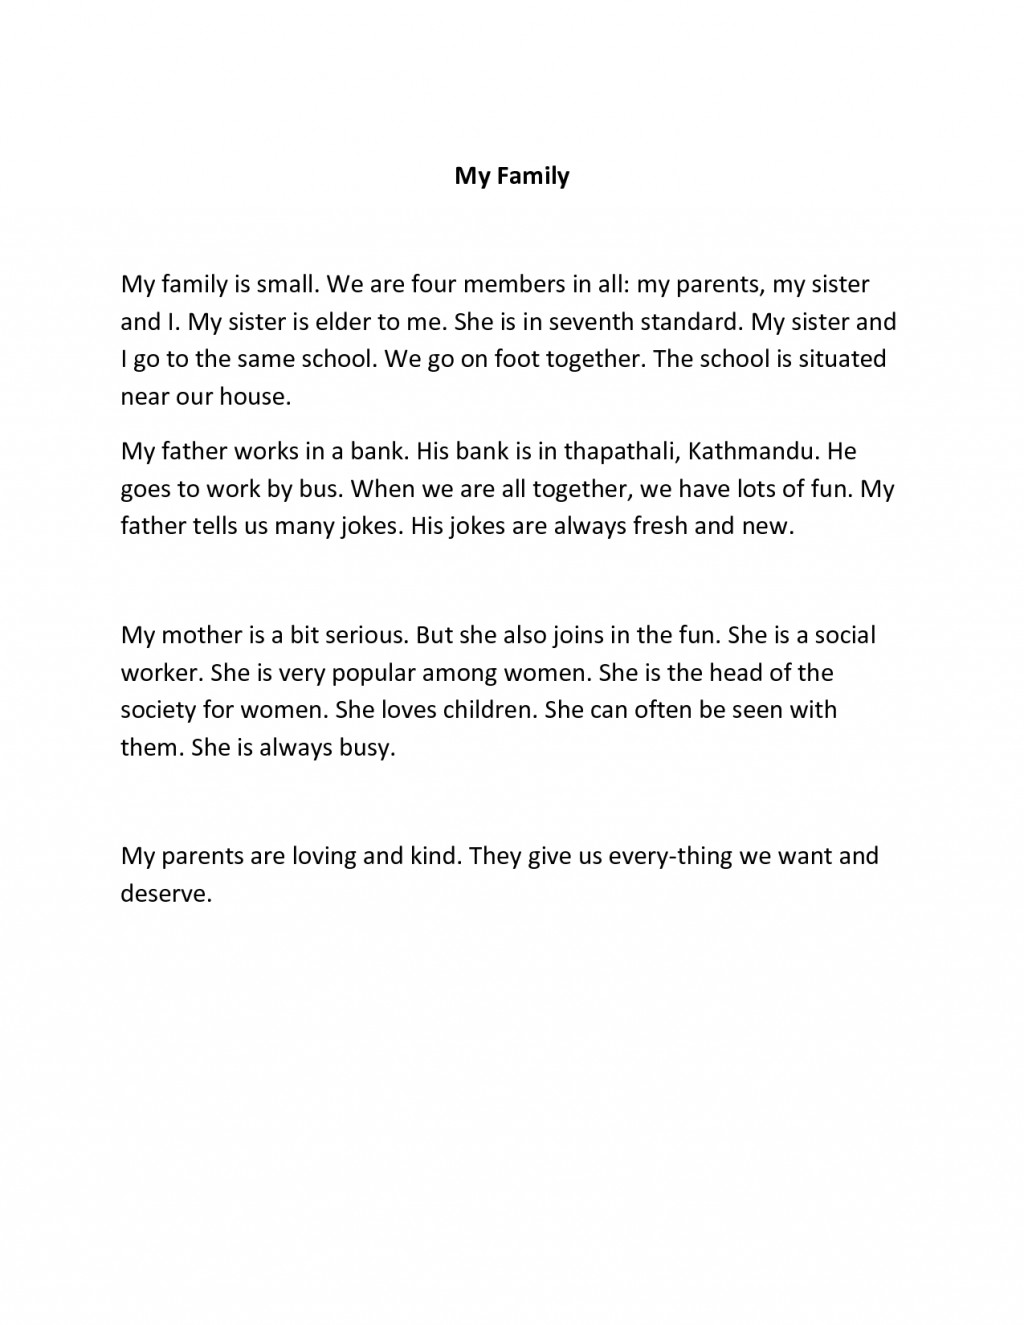 009 Family Essays Short Essay English My Example For Kindergarten On Class In German I Love About Is Always Supportive Hindi French Pet Student Impressive Examples Primary School Narrative To Read Small Spanish Large